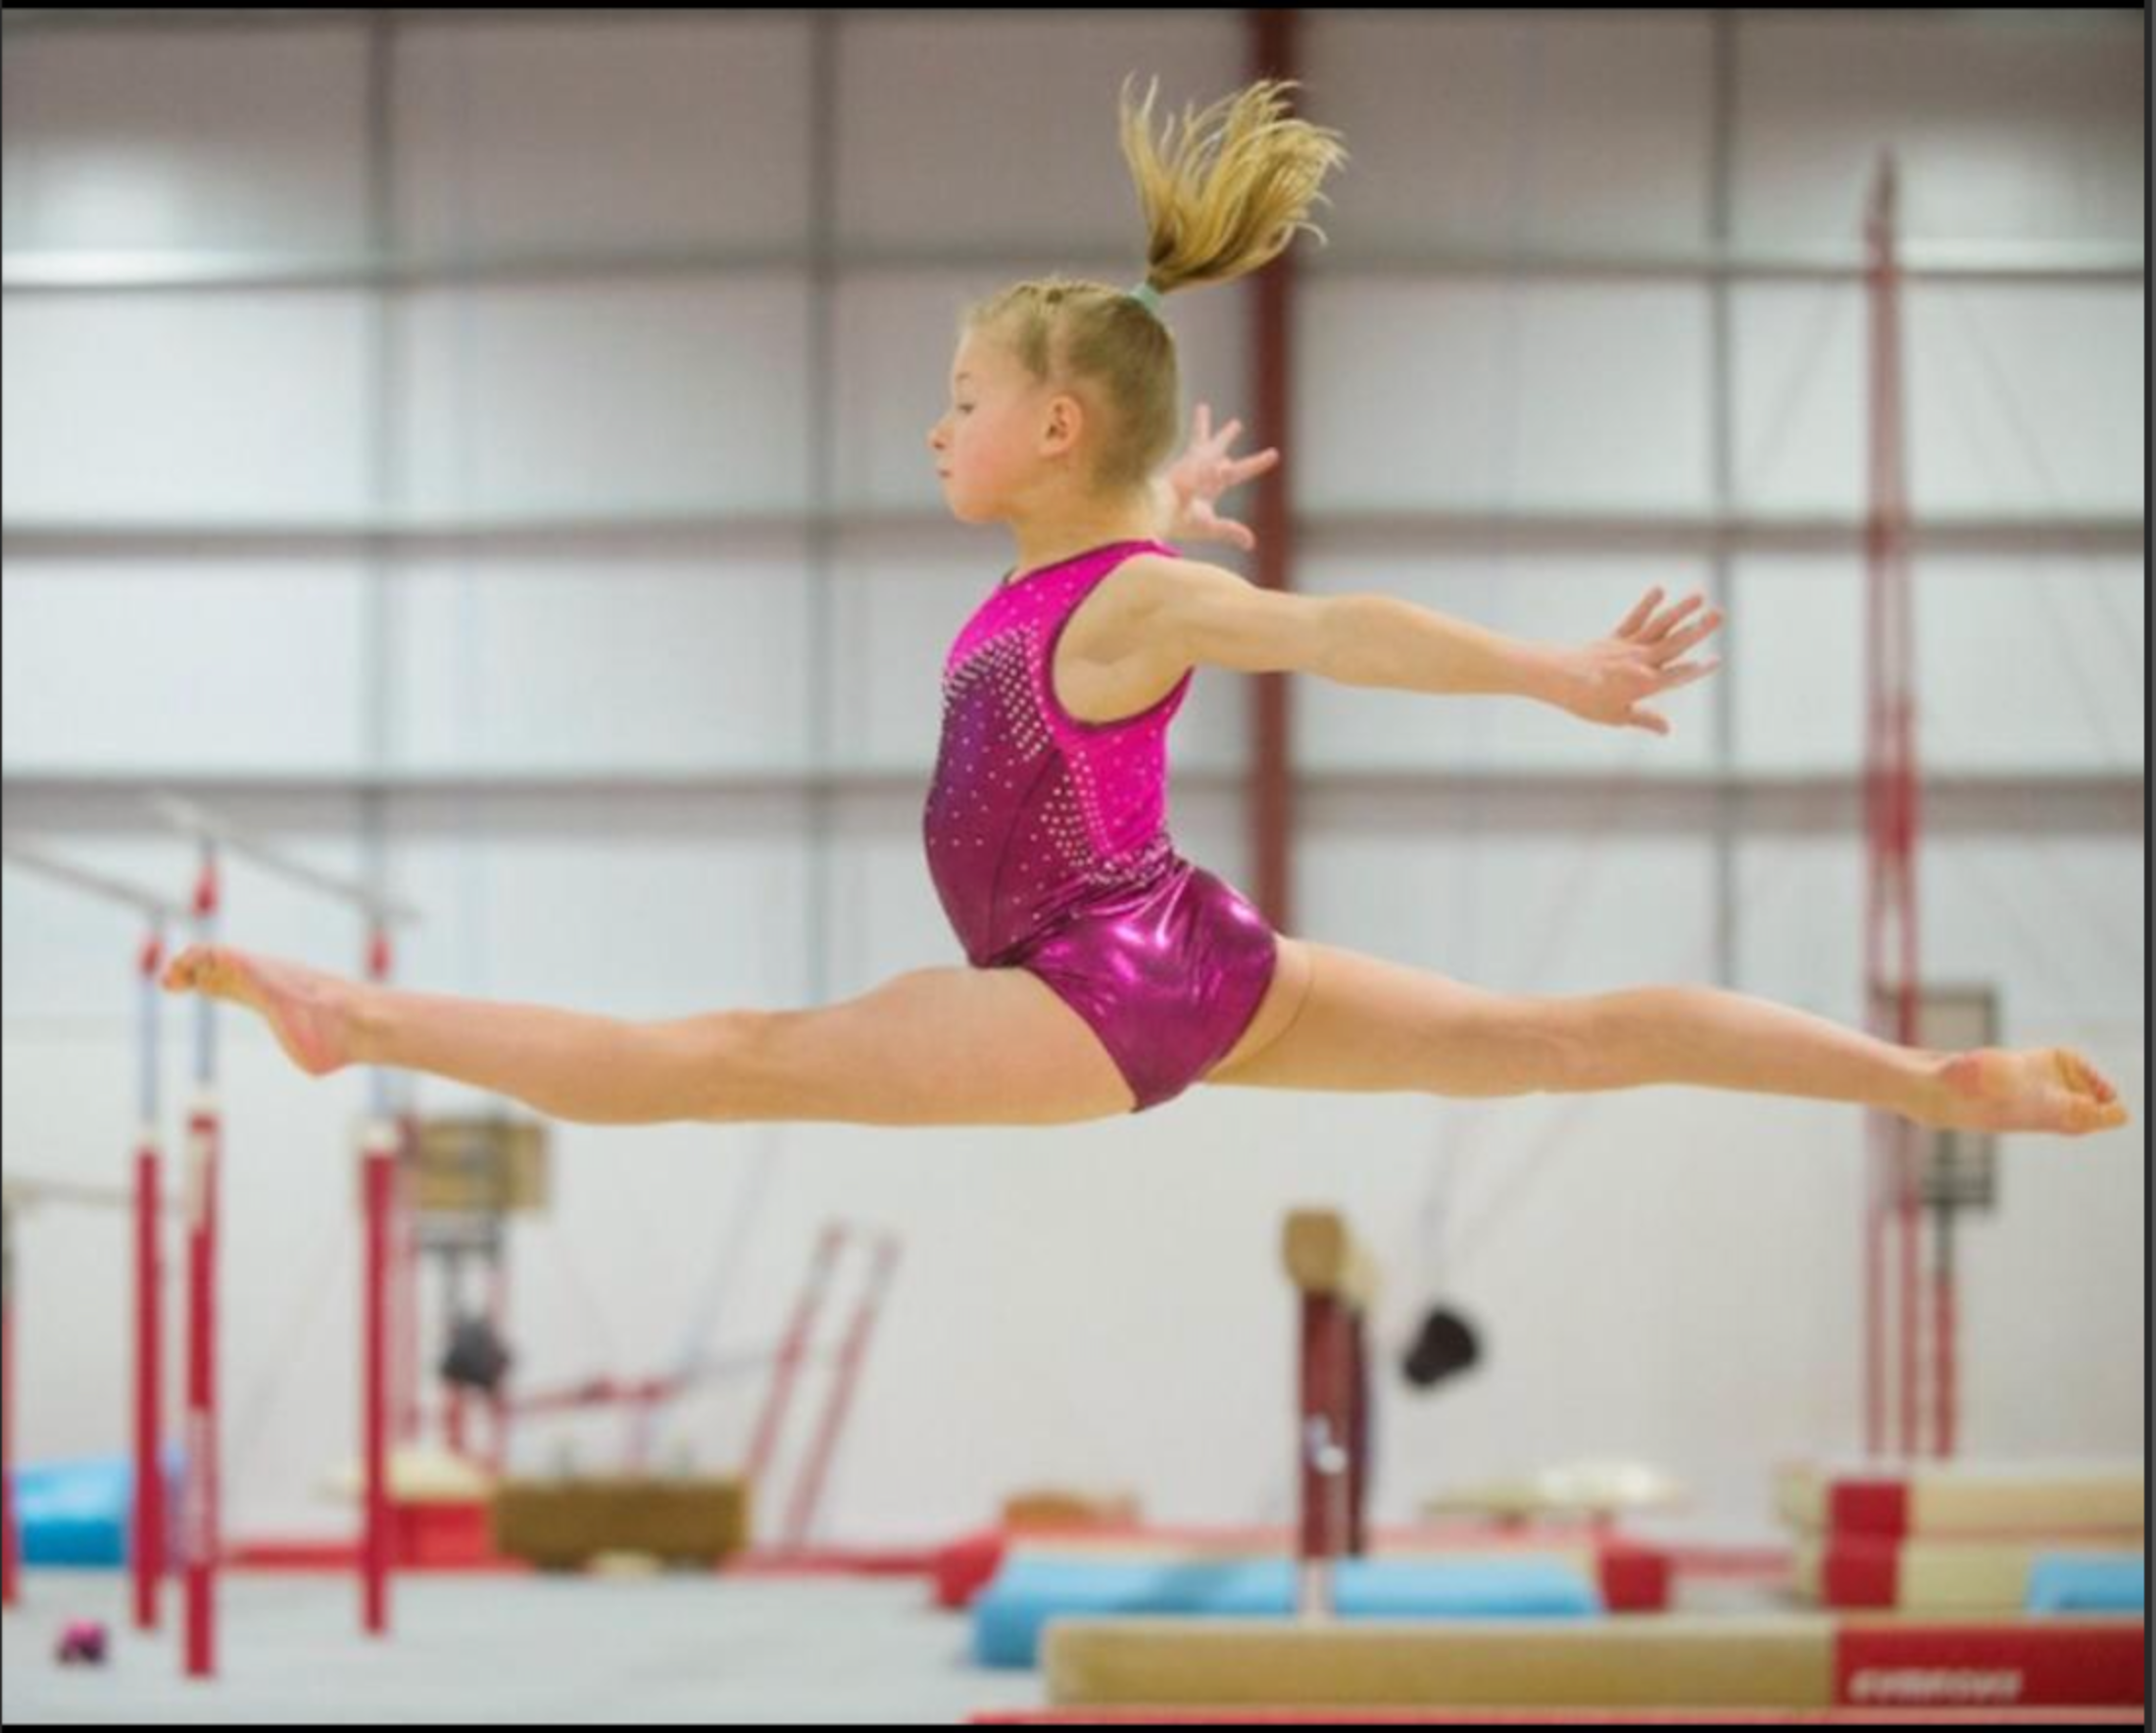 SPINS & LEAPS - TUESDAY 2ND MARCH 5:00pm only for gymnasts that train 6hrs +